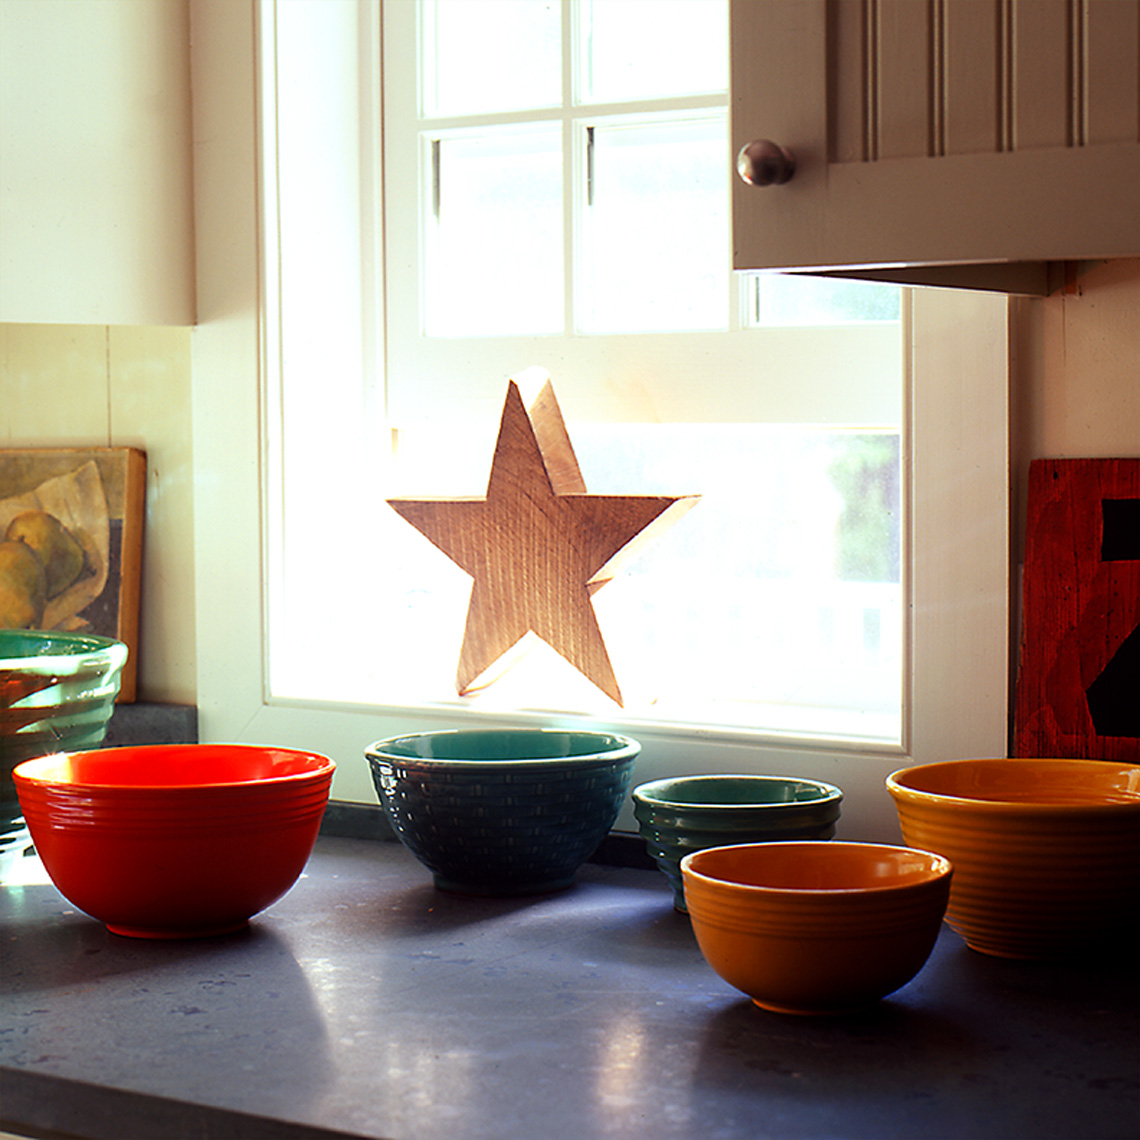 bowls_and_star on kitchen counter